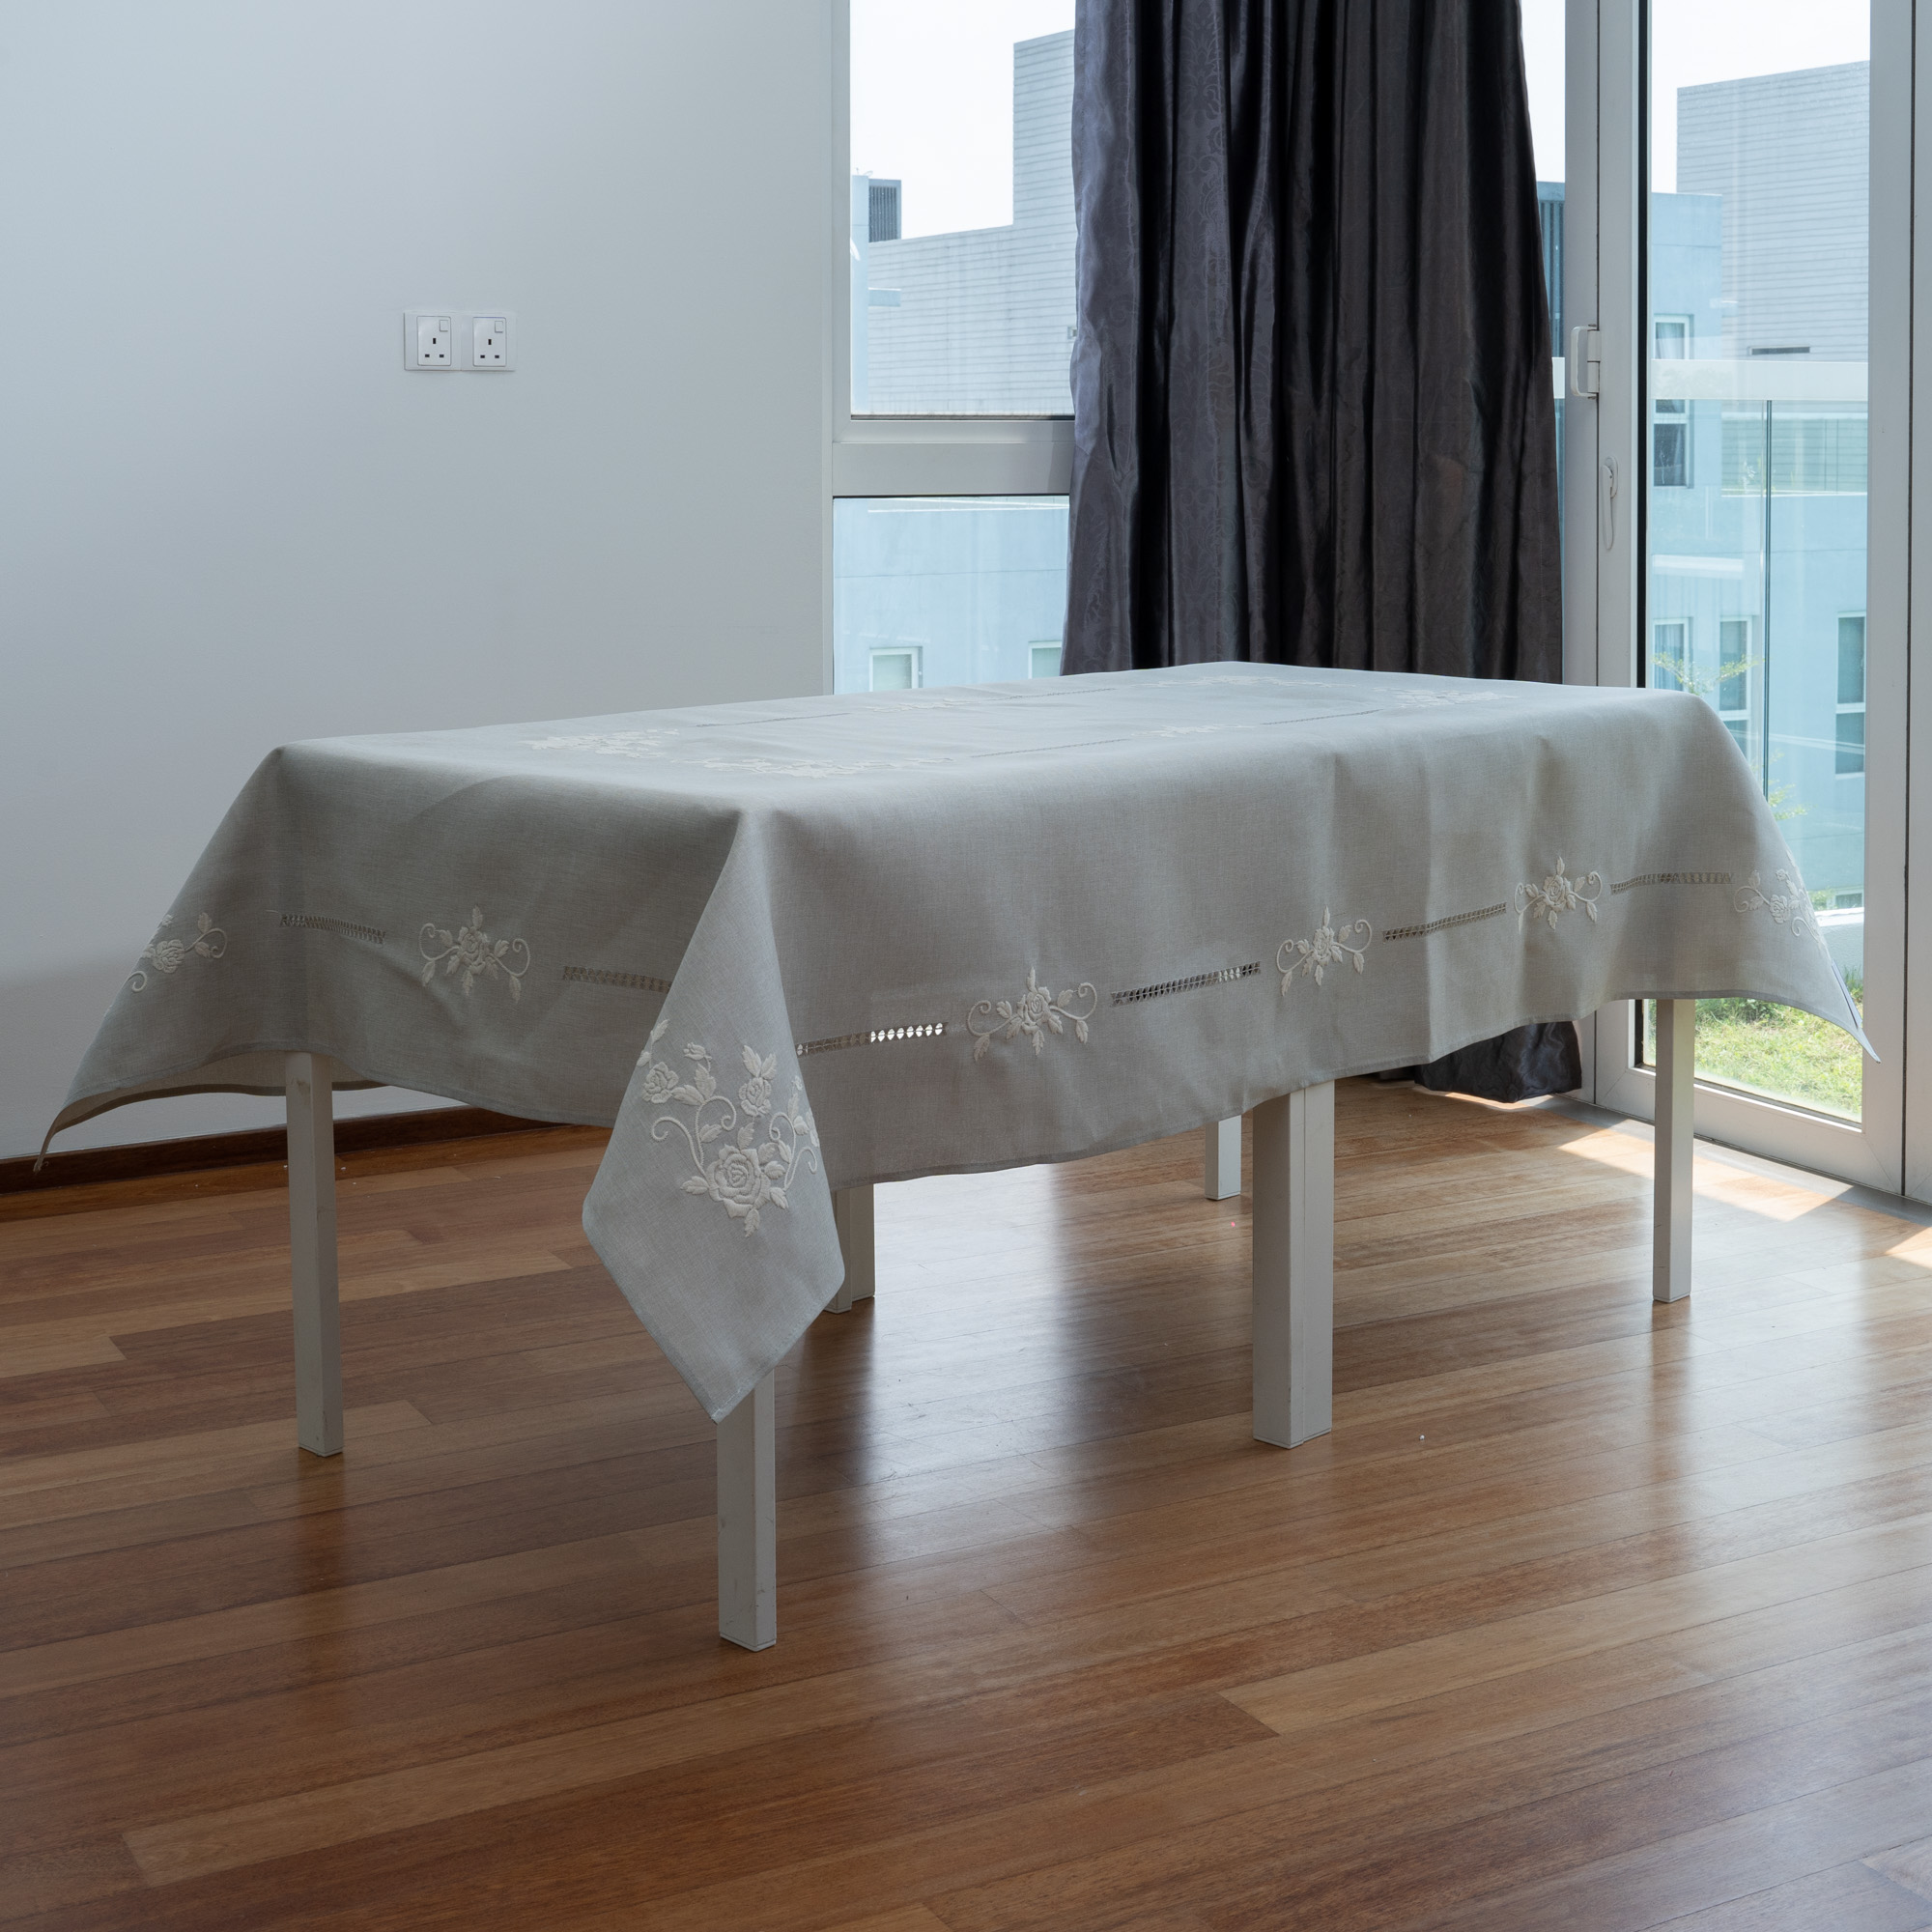 Rosie Grey with White Thread Embroidery And Hemstitches Tablecloth. Easy Care Cation Polylinen. Multi-Size. Rectangle, R